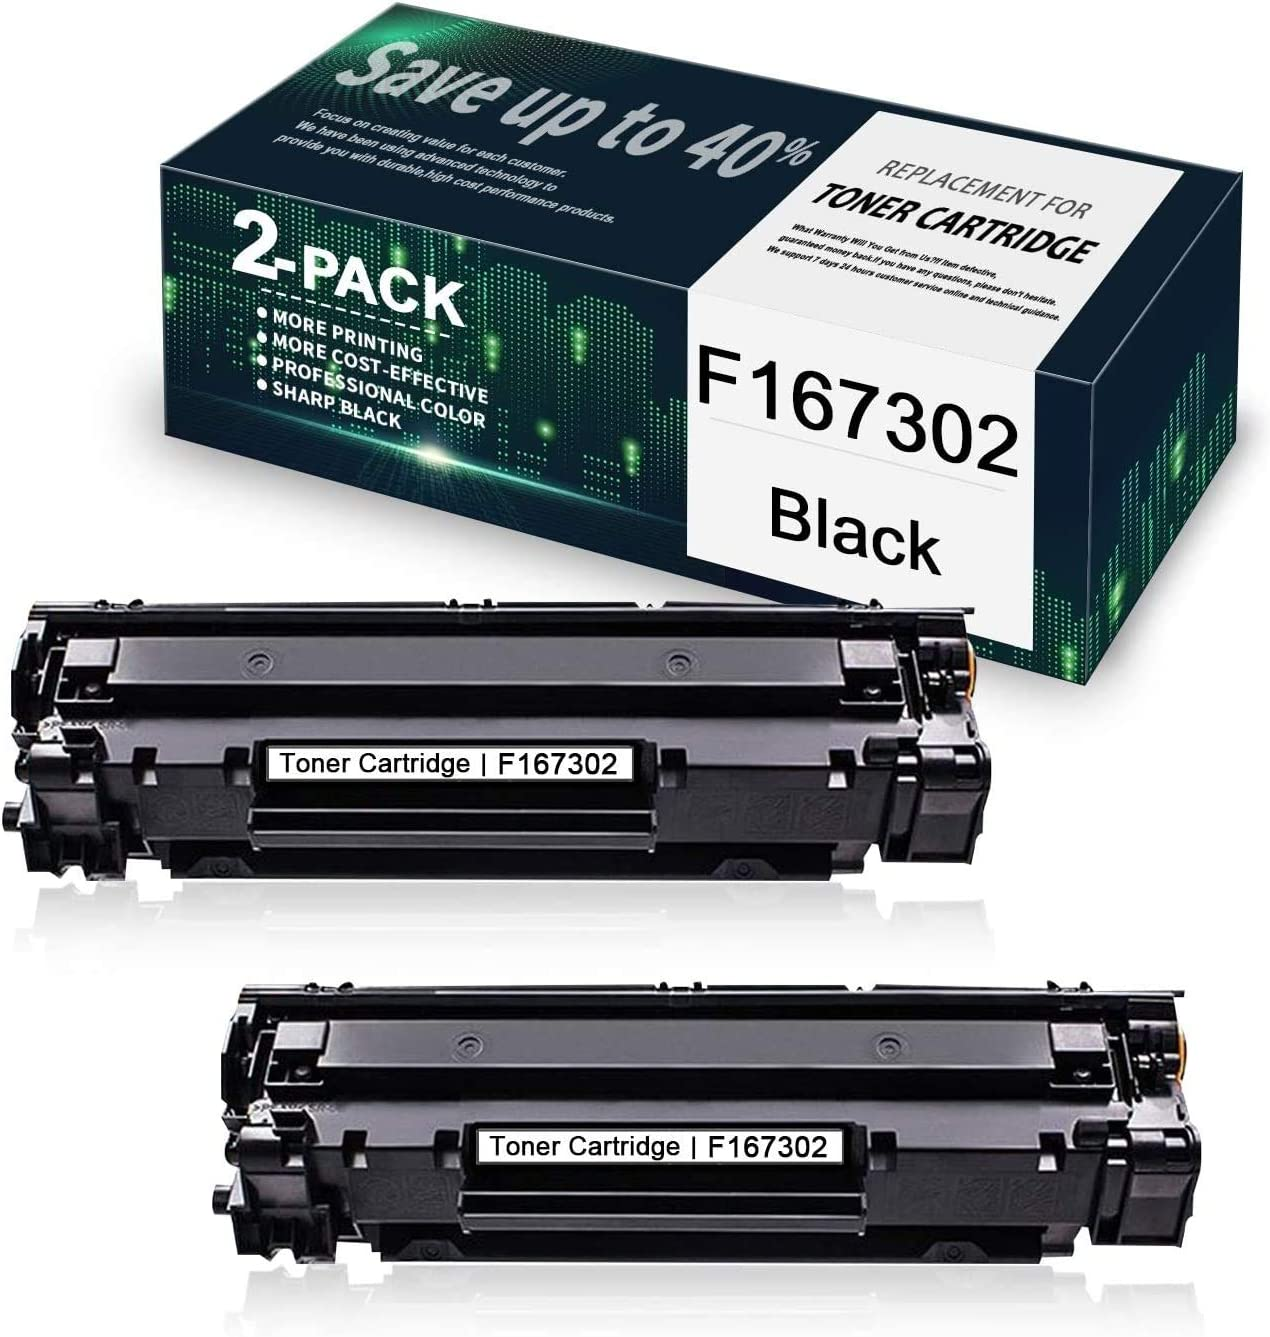 5 Pack MAXink Compatible F167300 Toner Cartridge Replacement for Canon F167300 Printer Toner Cartridge